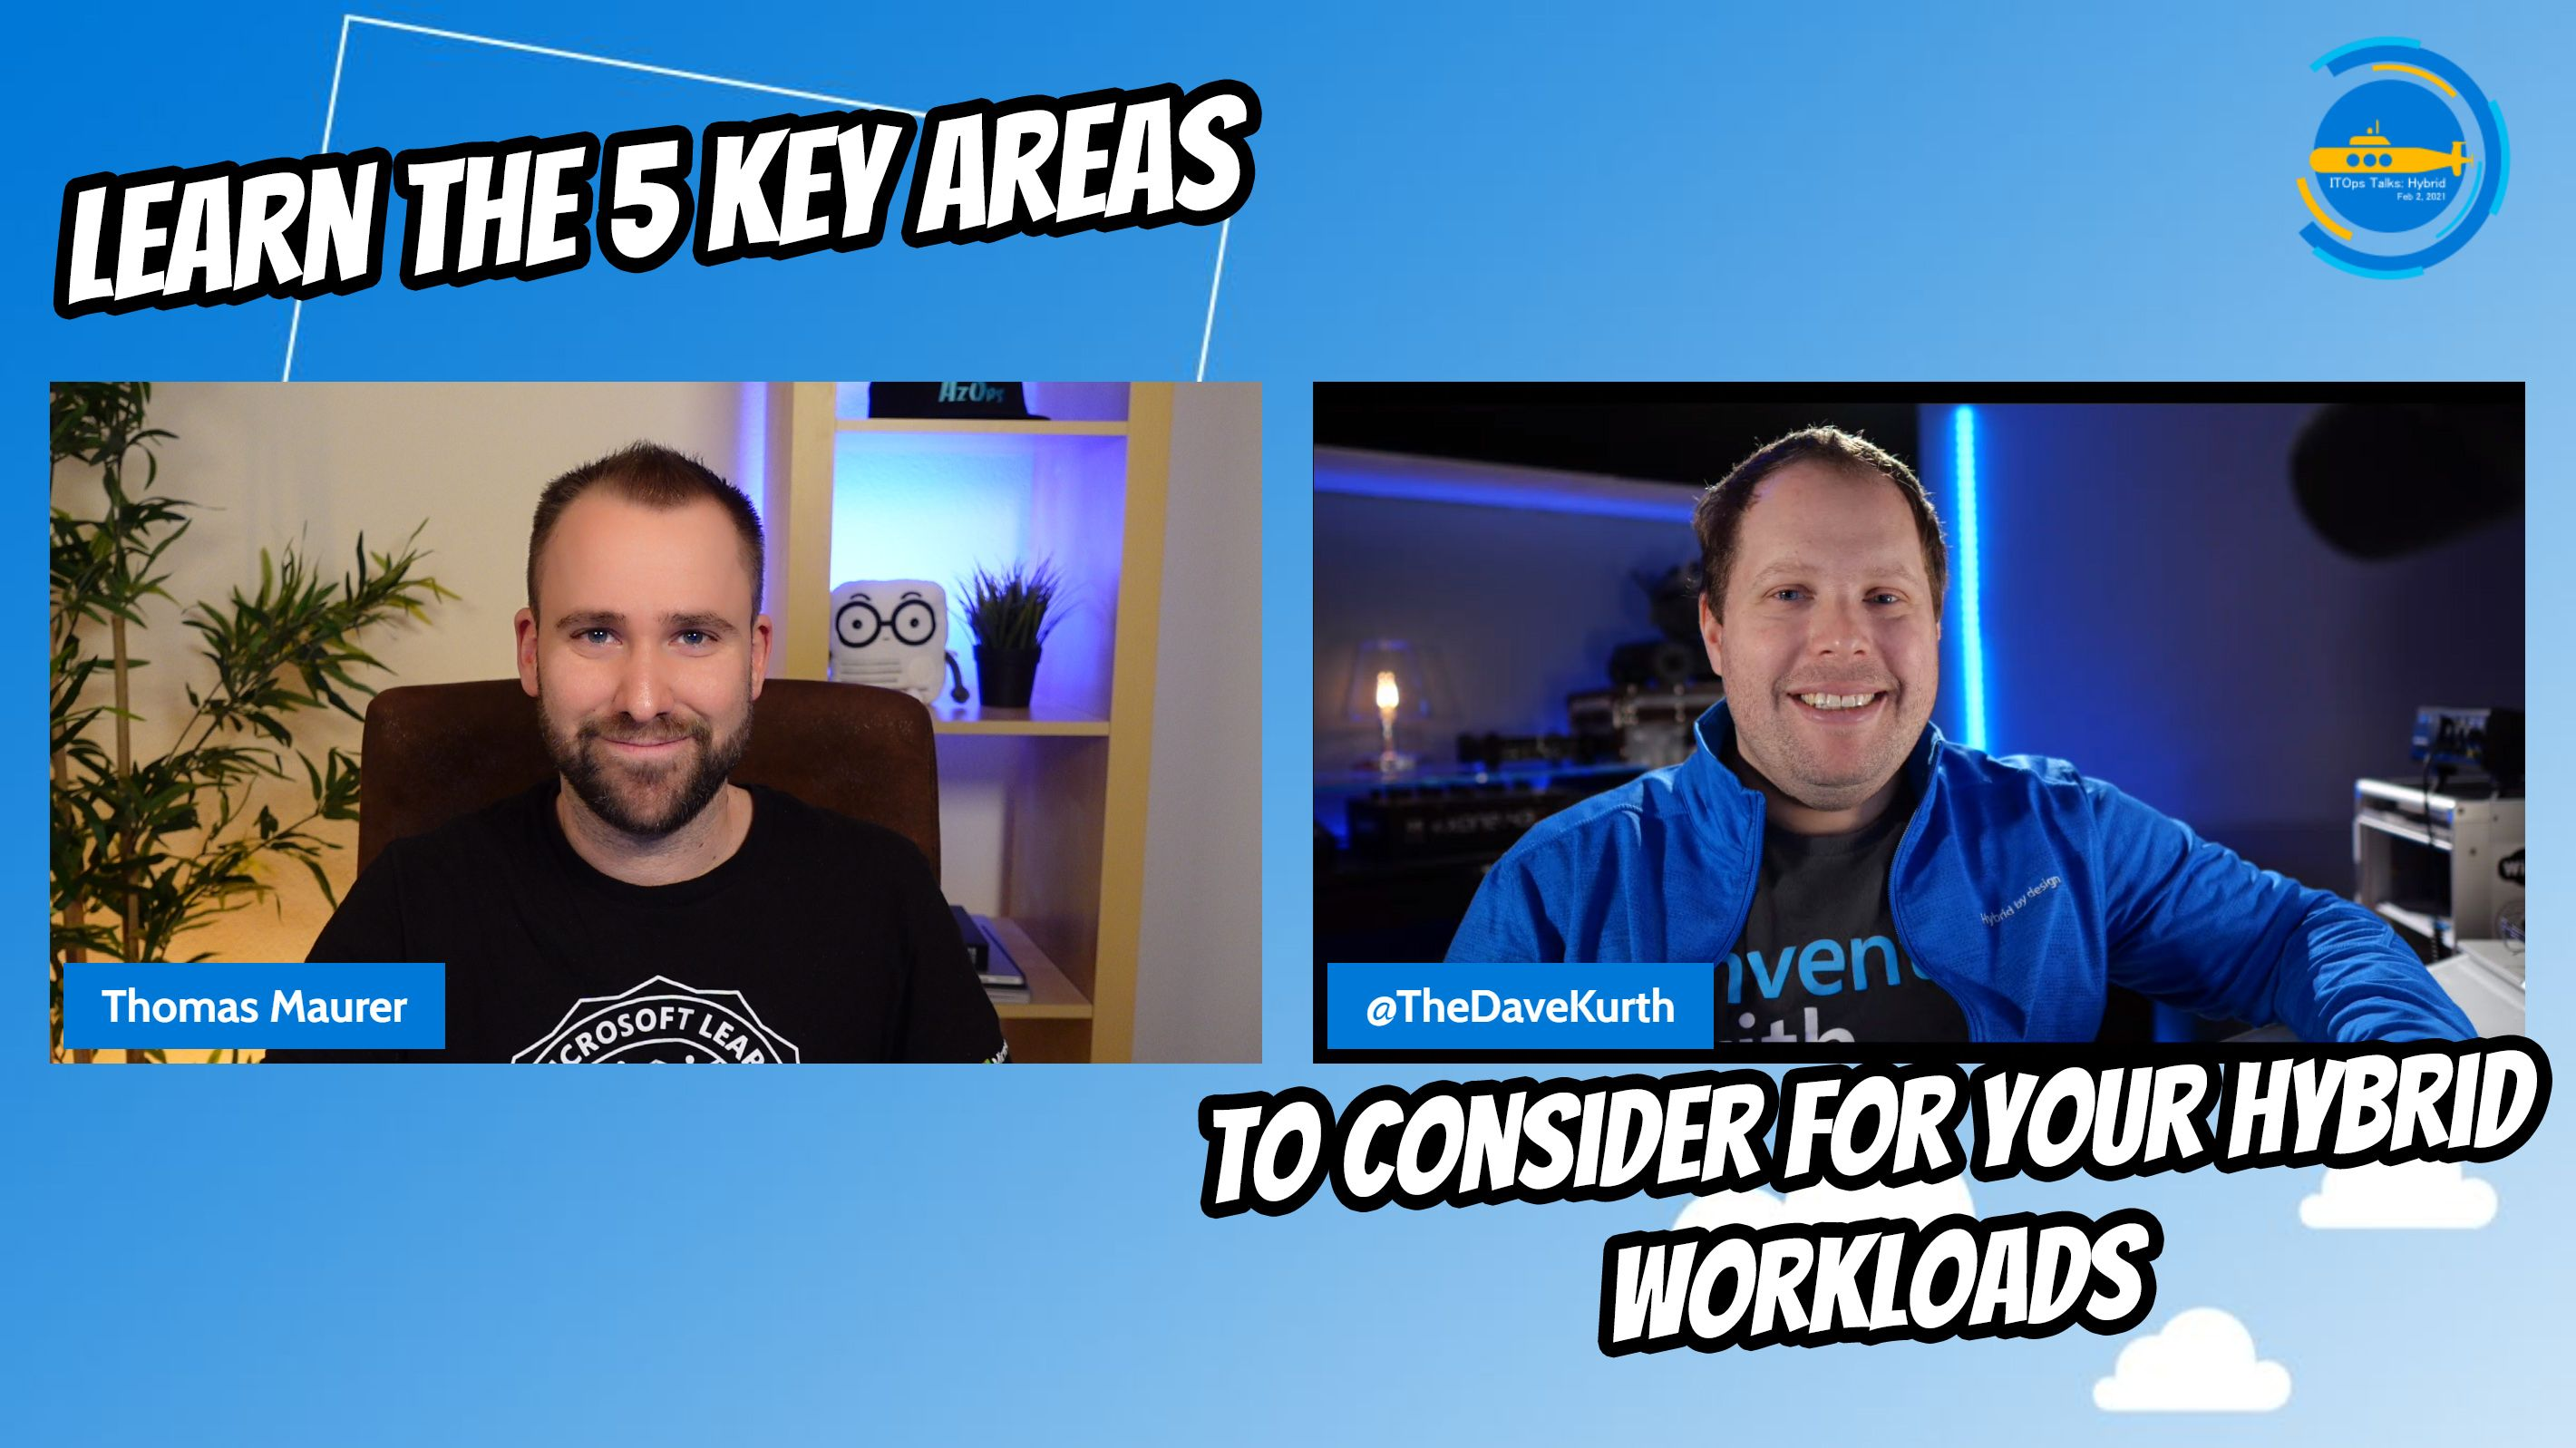 OPS111: Learn the 5 key areas to consider for your hybrid workloads